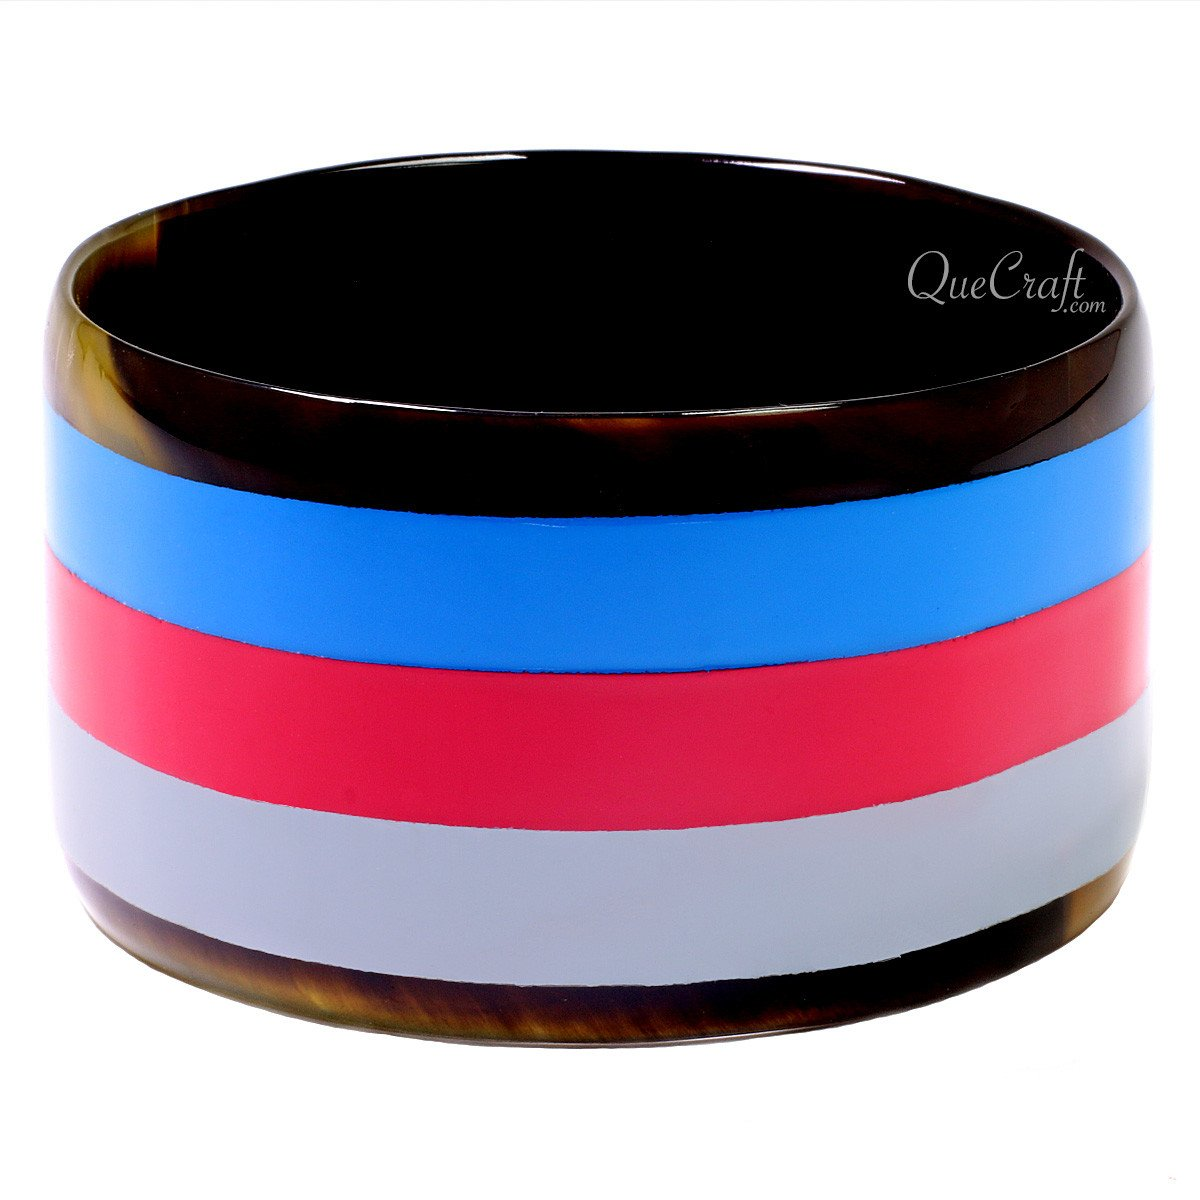 Horn & Lacquer Bangle Bracelet #12733 - HORN.JEWELRY by QueCraft